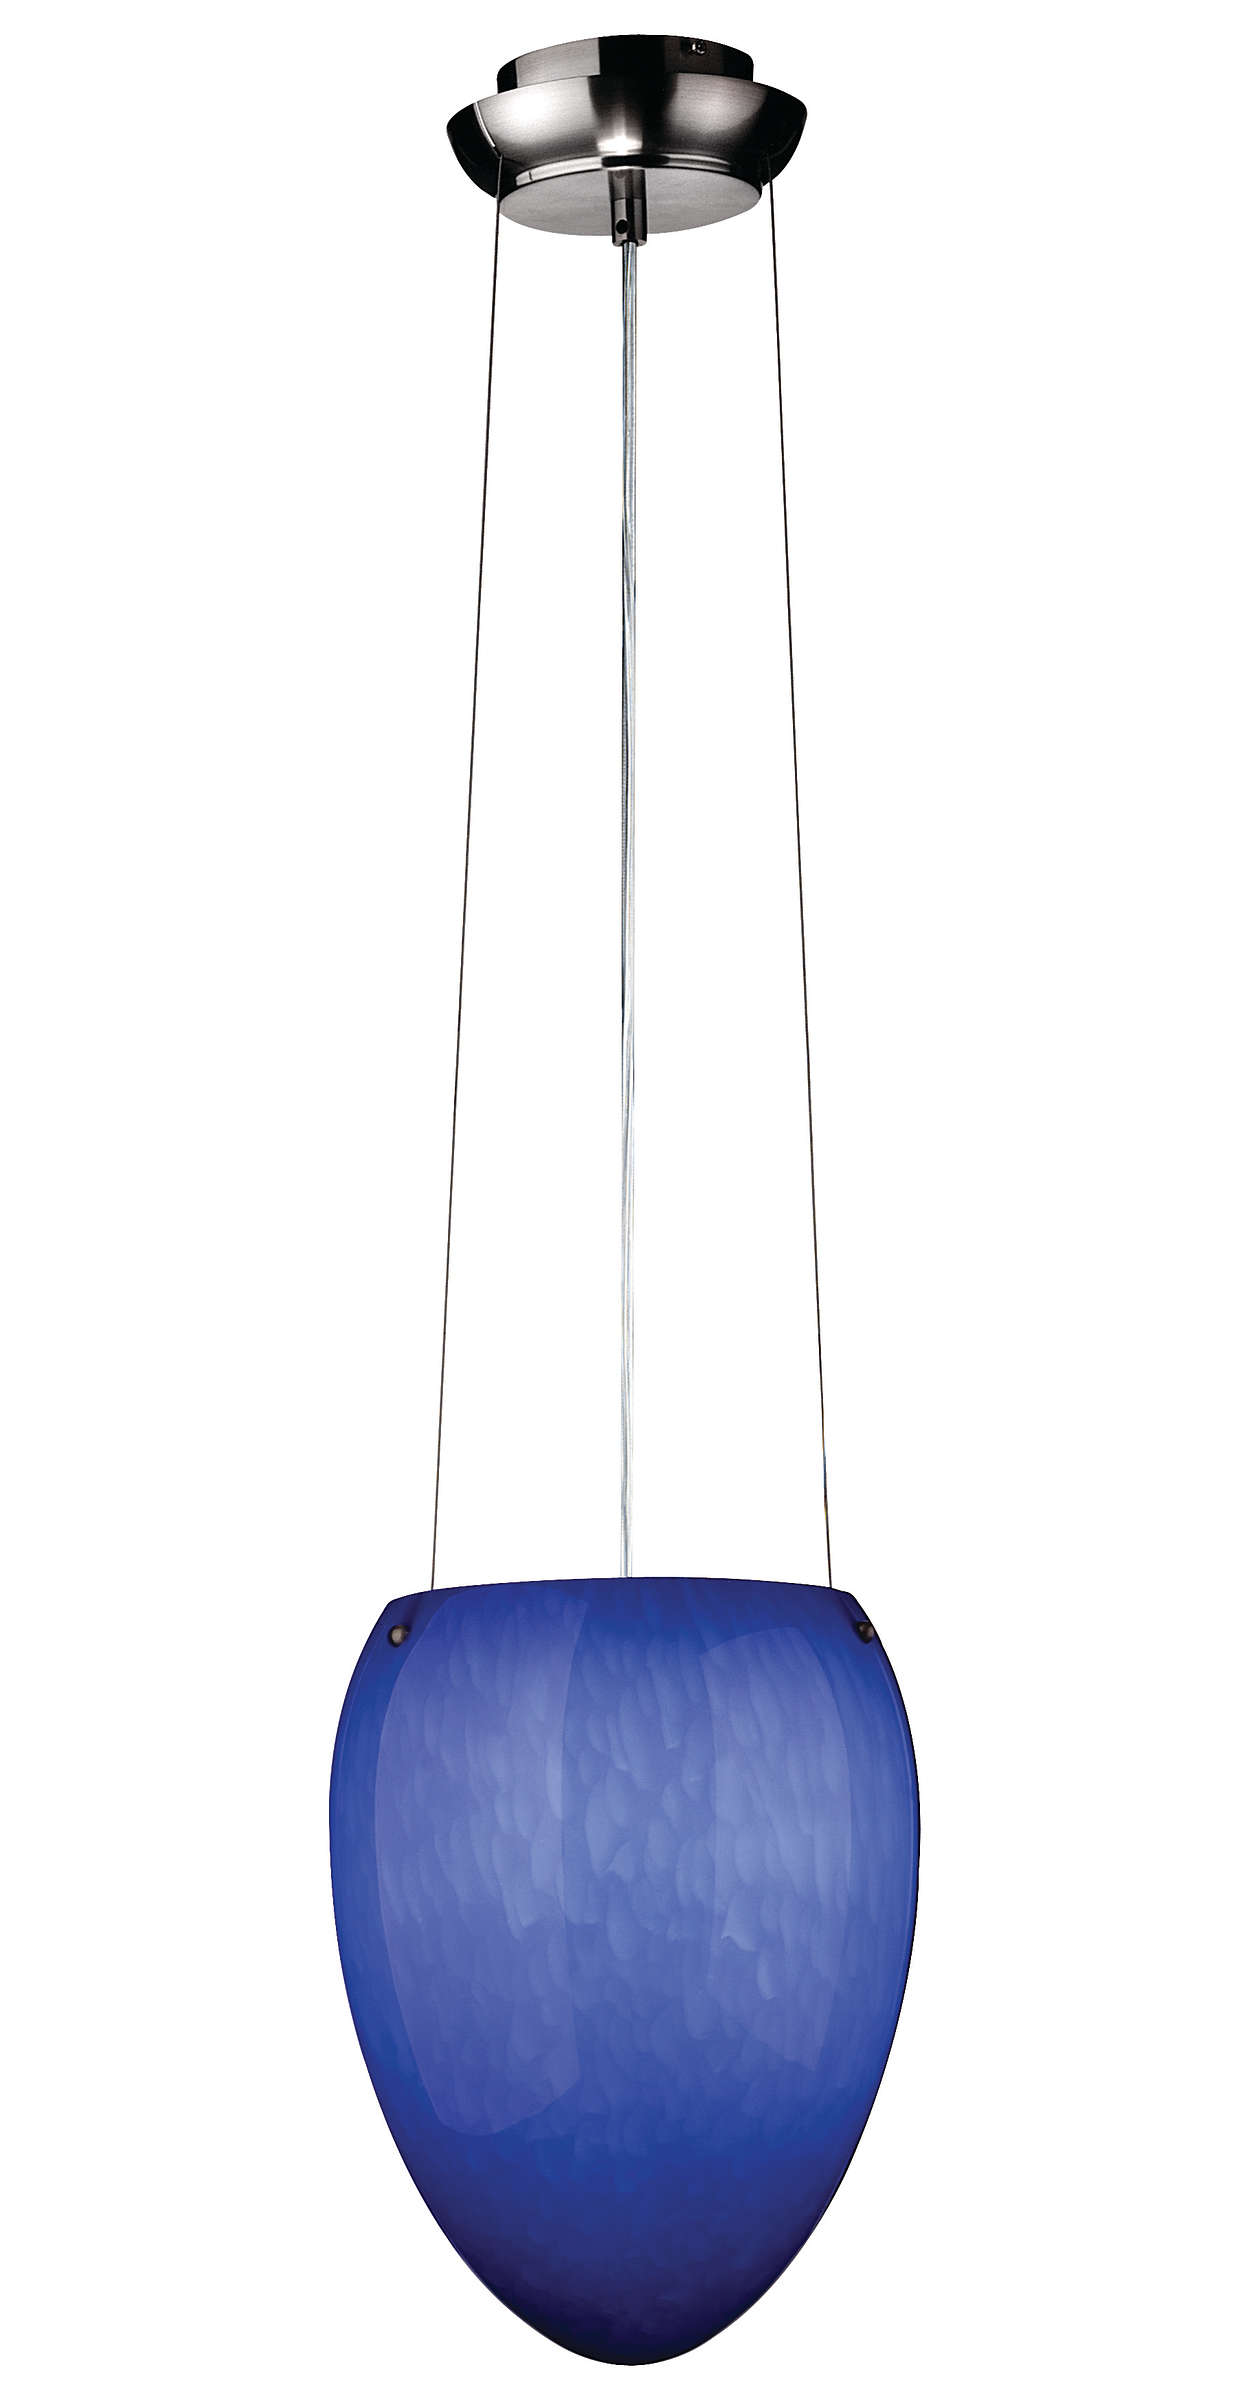 Madison 1-light Pendant in Satin Nickel finish